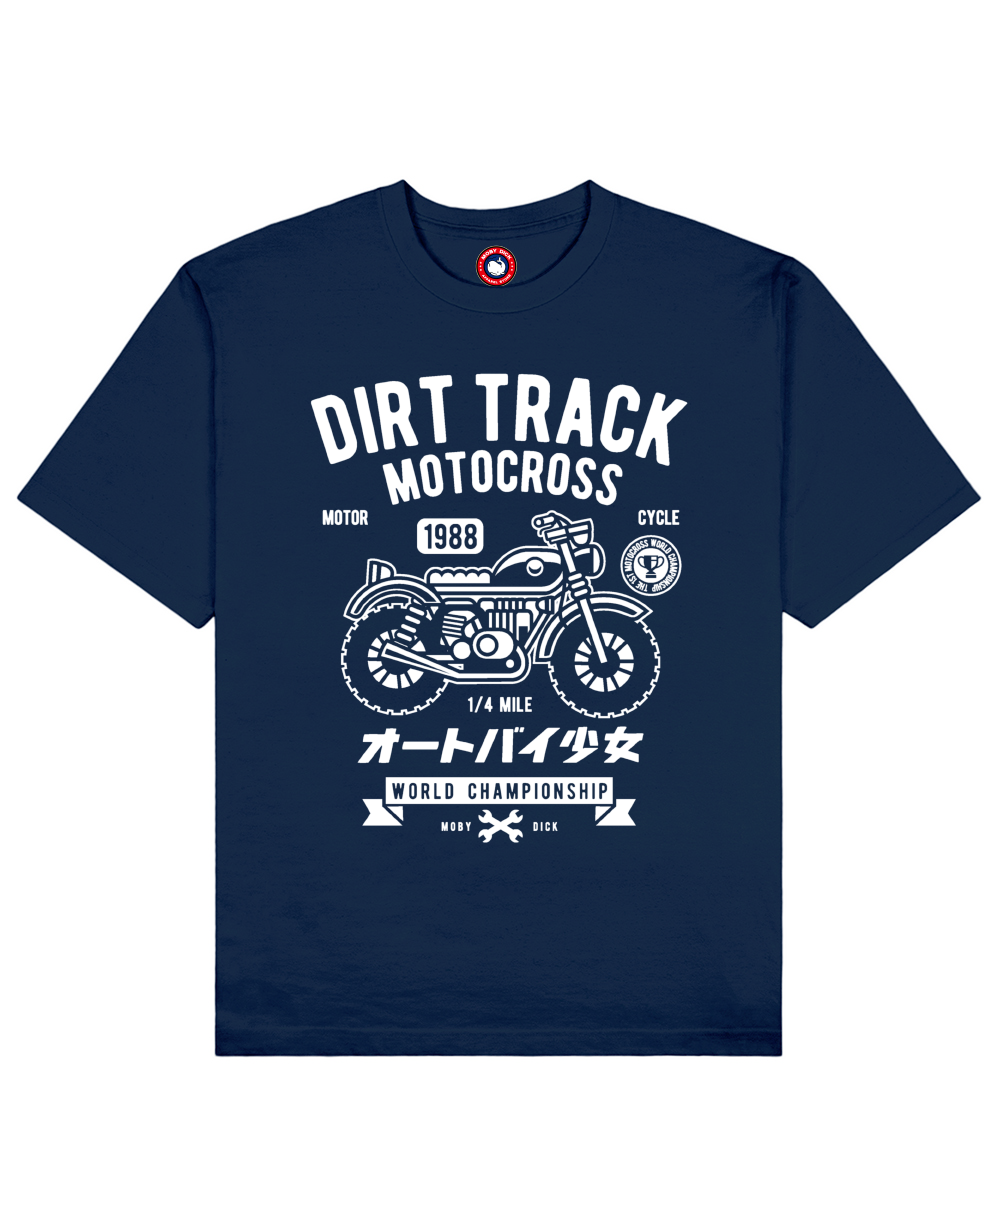 Dirt Track Print T-Shirt in Blue - T-Shirts - MOBY DICK - BRANMA